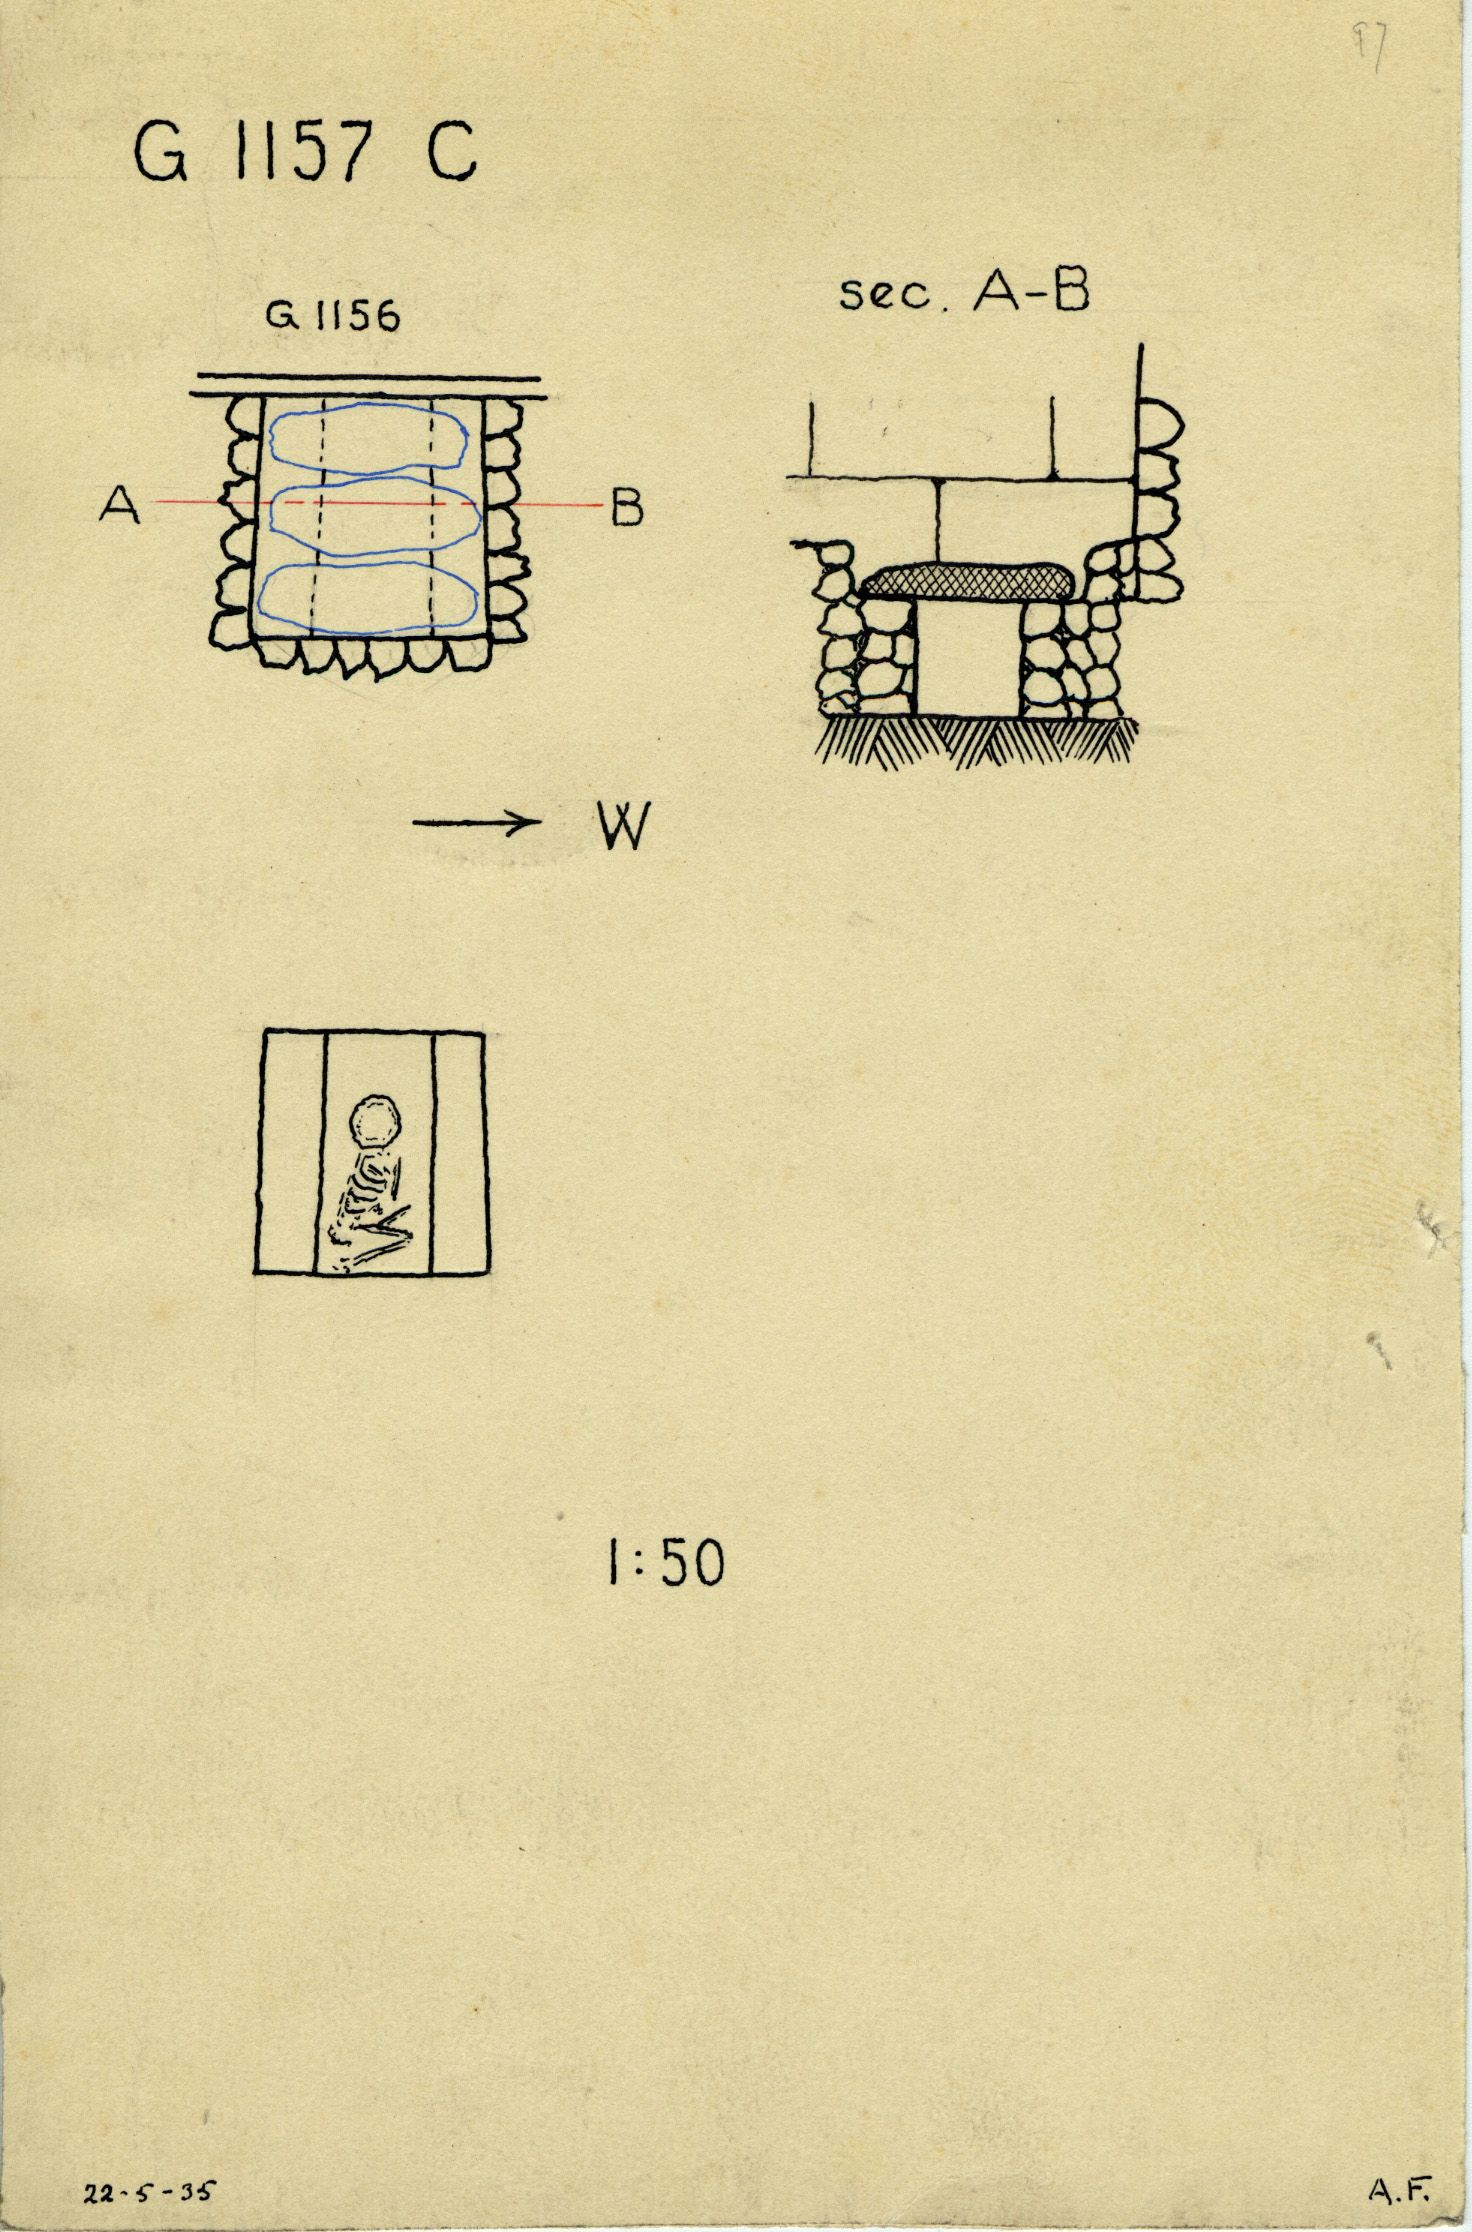 Maps and plans: G 1157, Shaft C